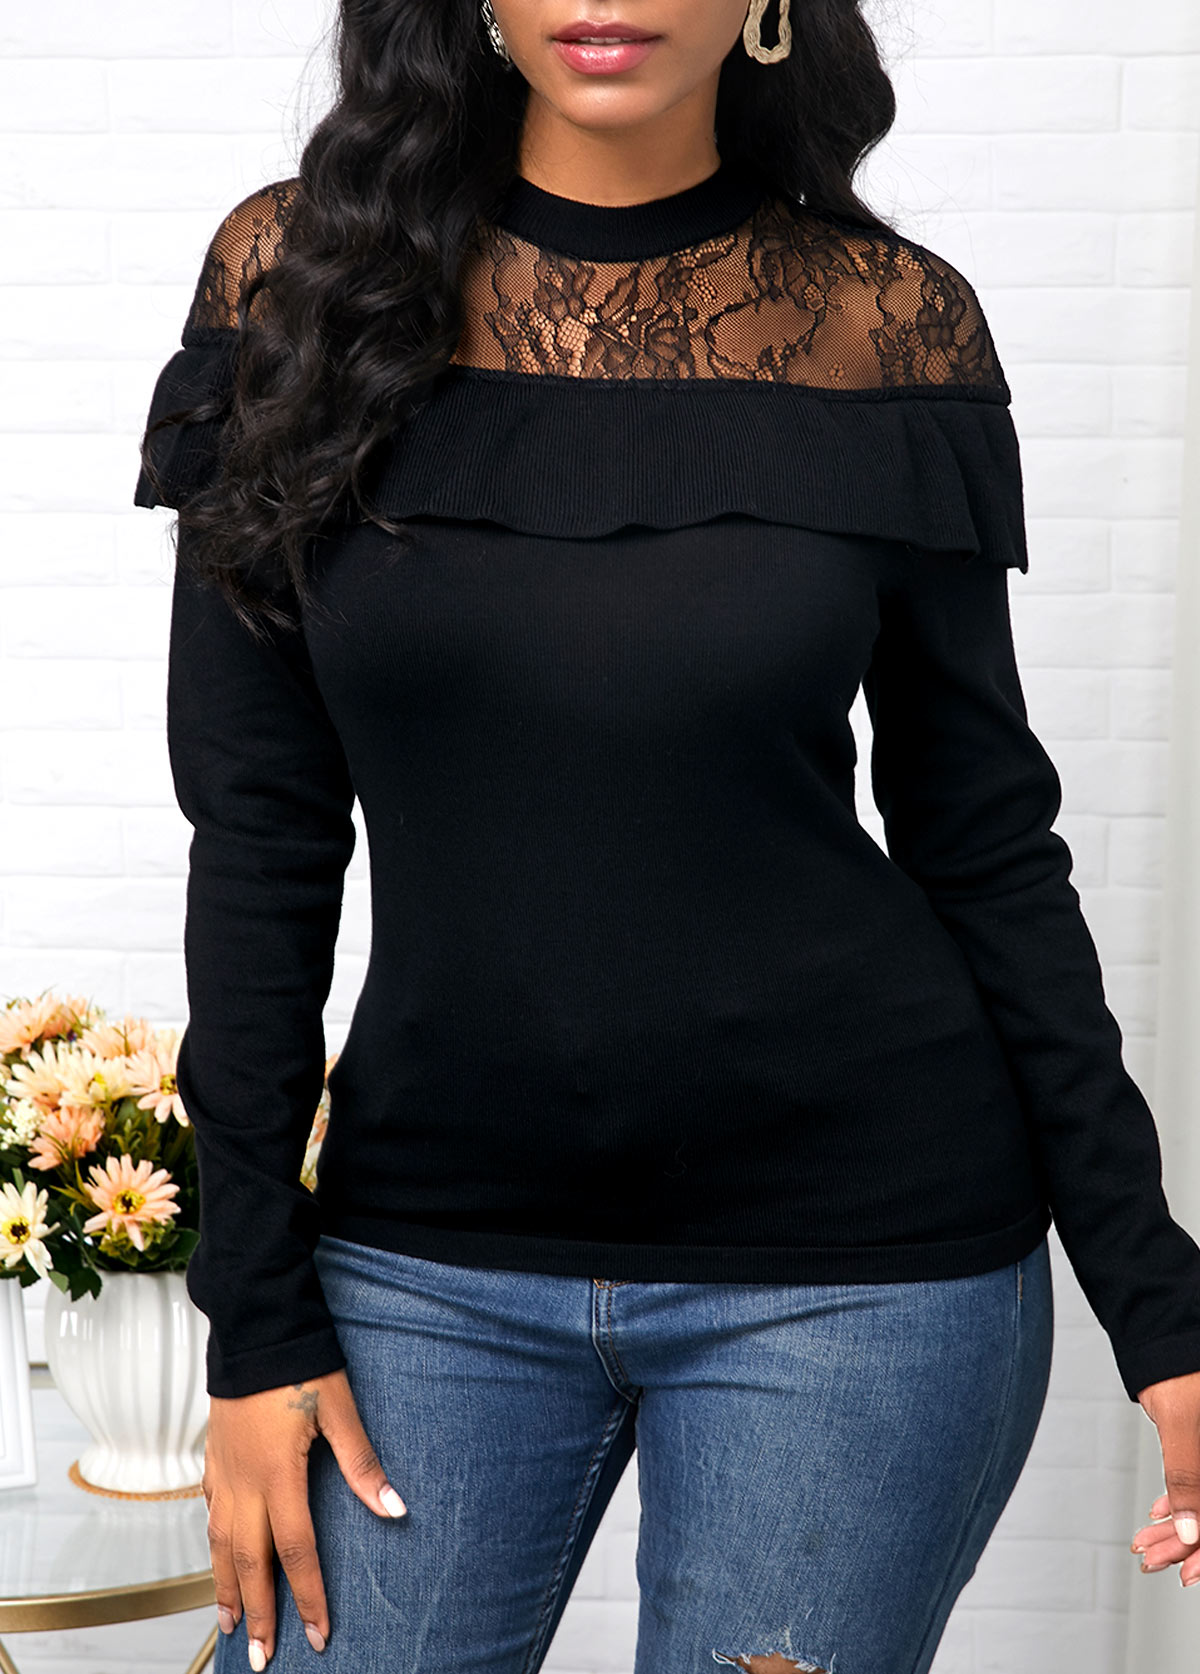 Ruffle Decorated Lace Patchwork Black Sweater